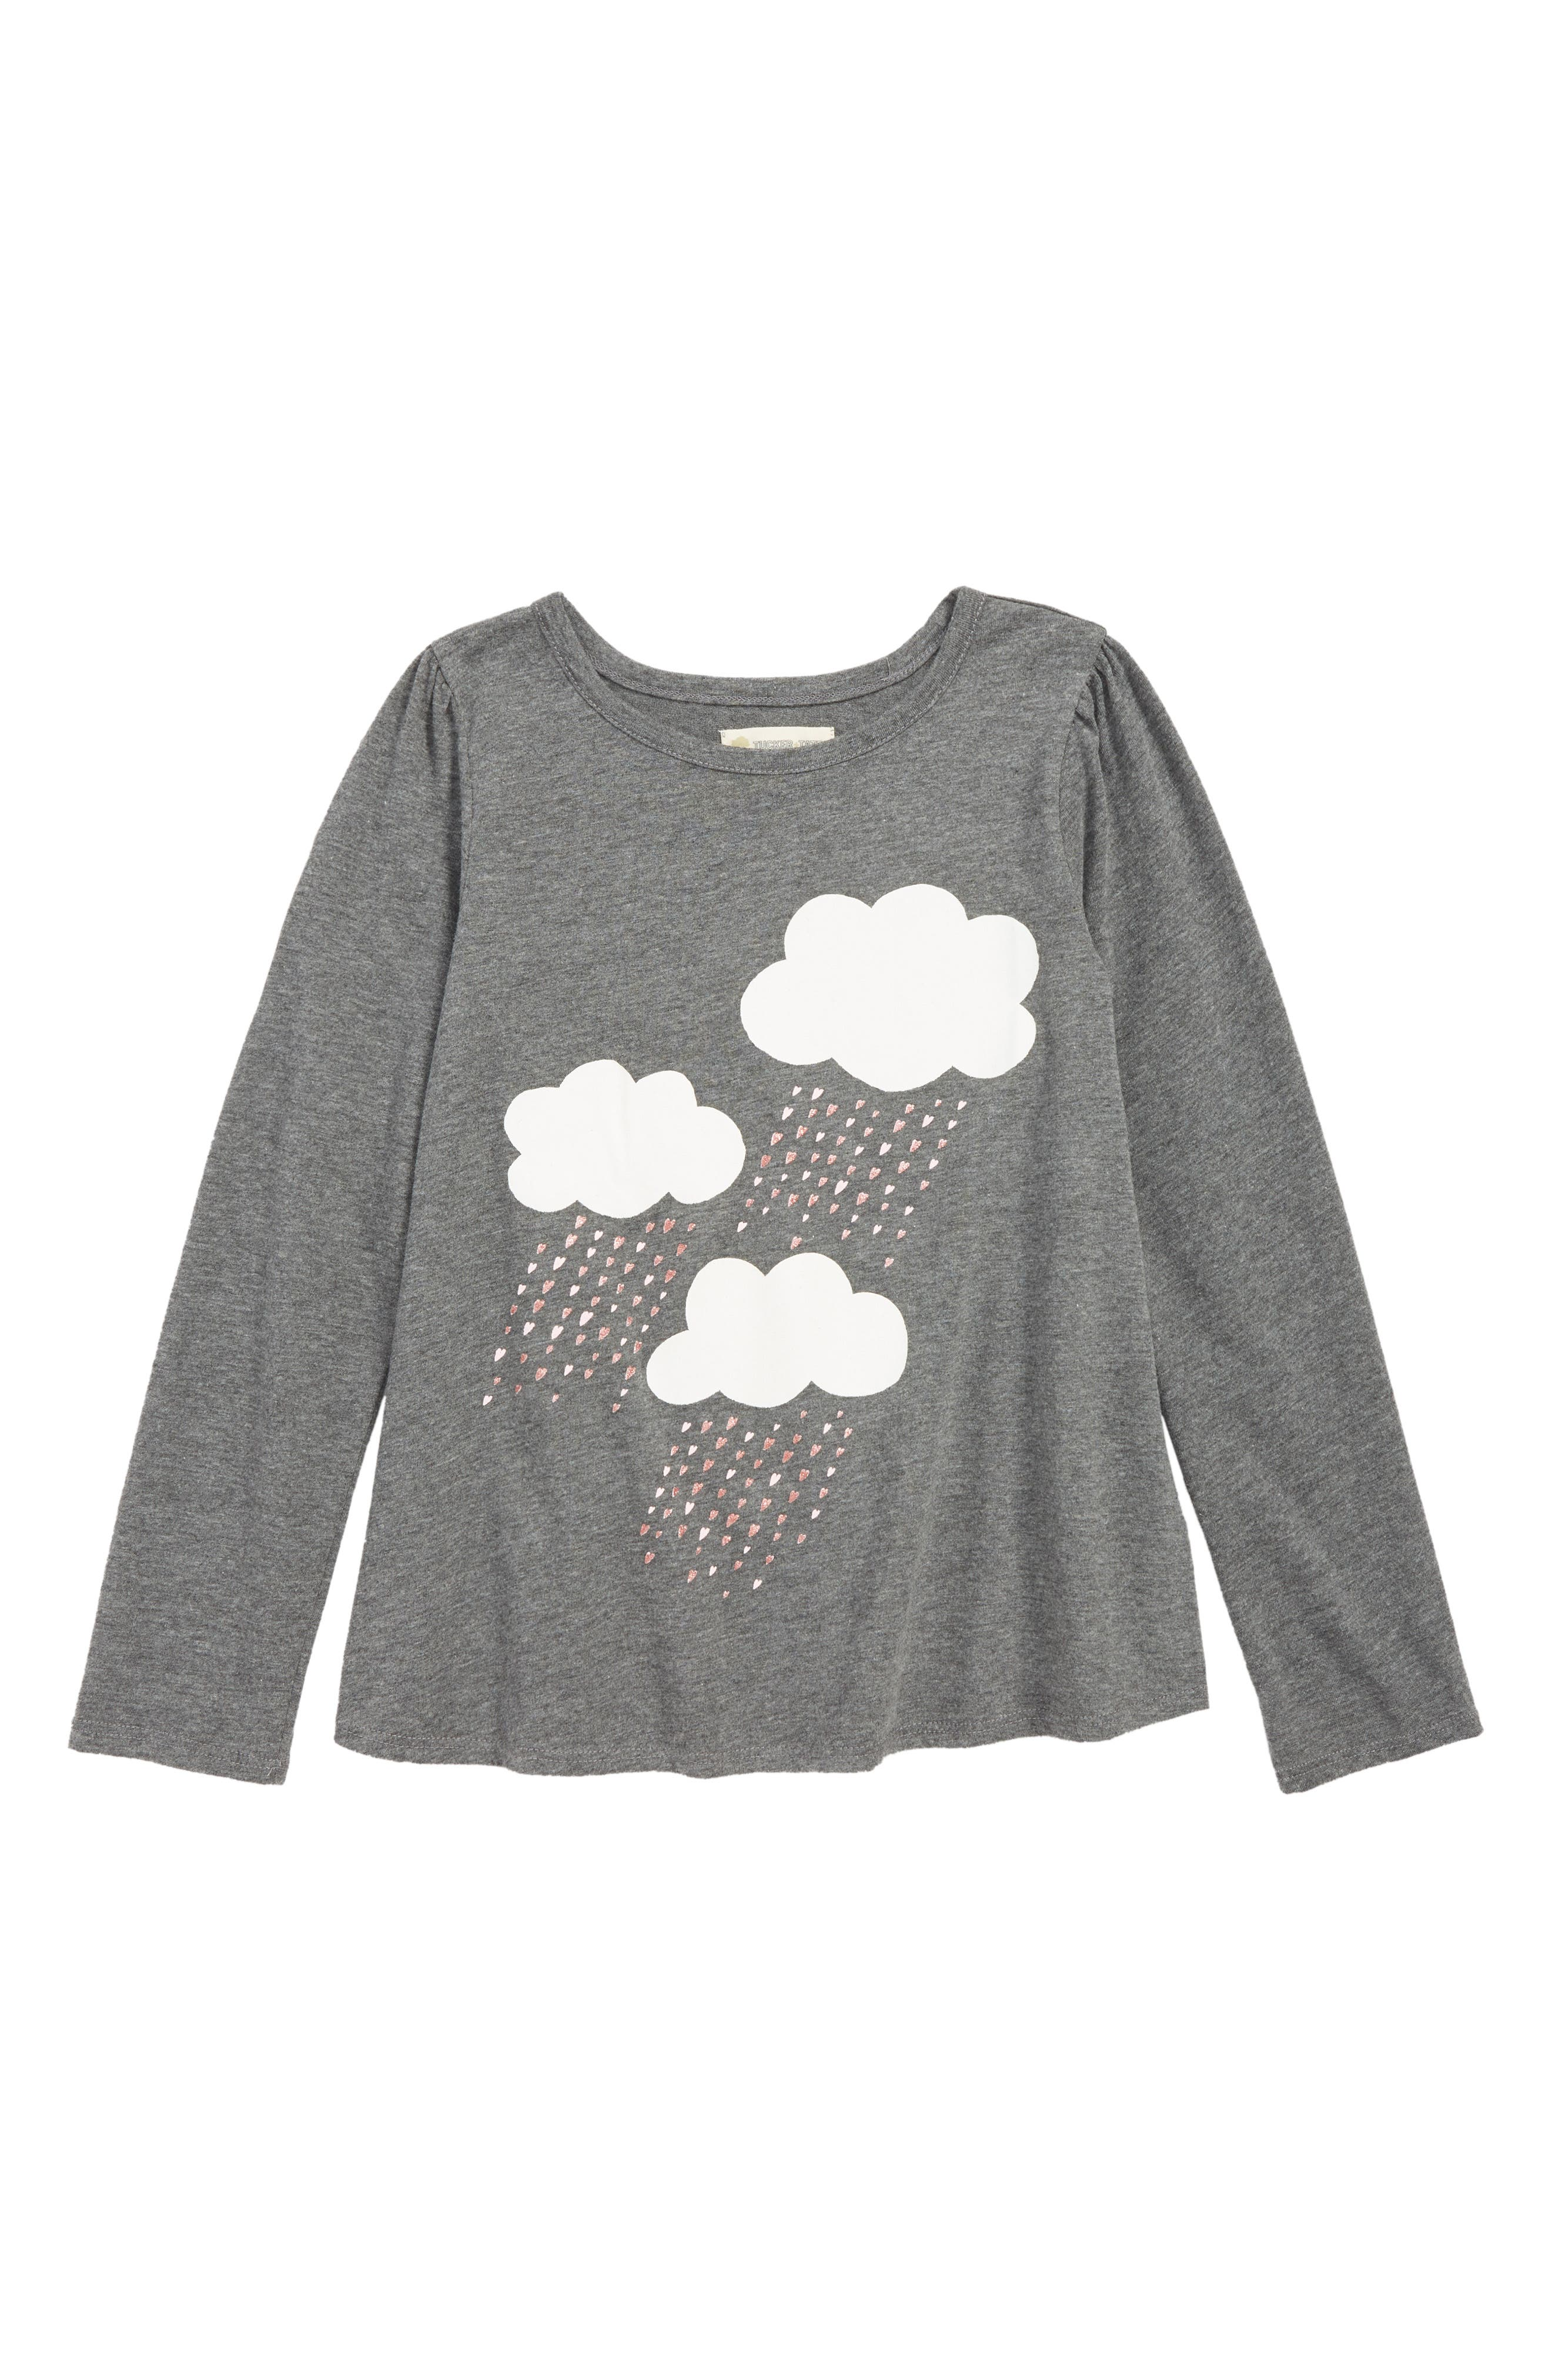 Sparkle Graphic Tee, Main, color, GREY MD CHARCOAL HTR CLOUDS